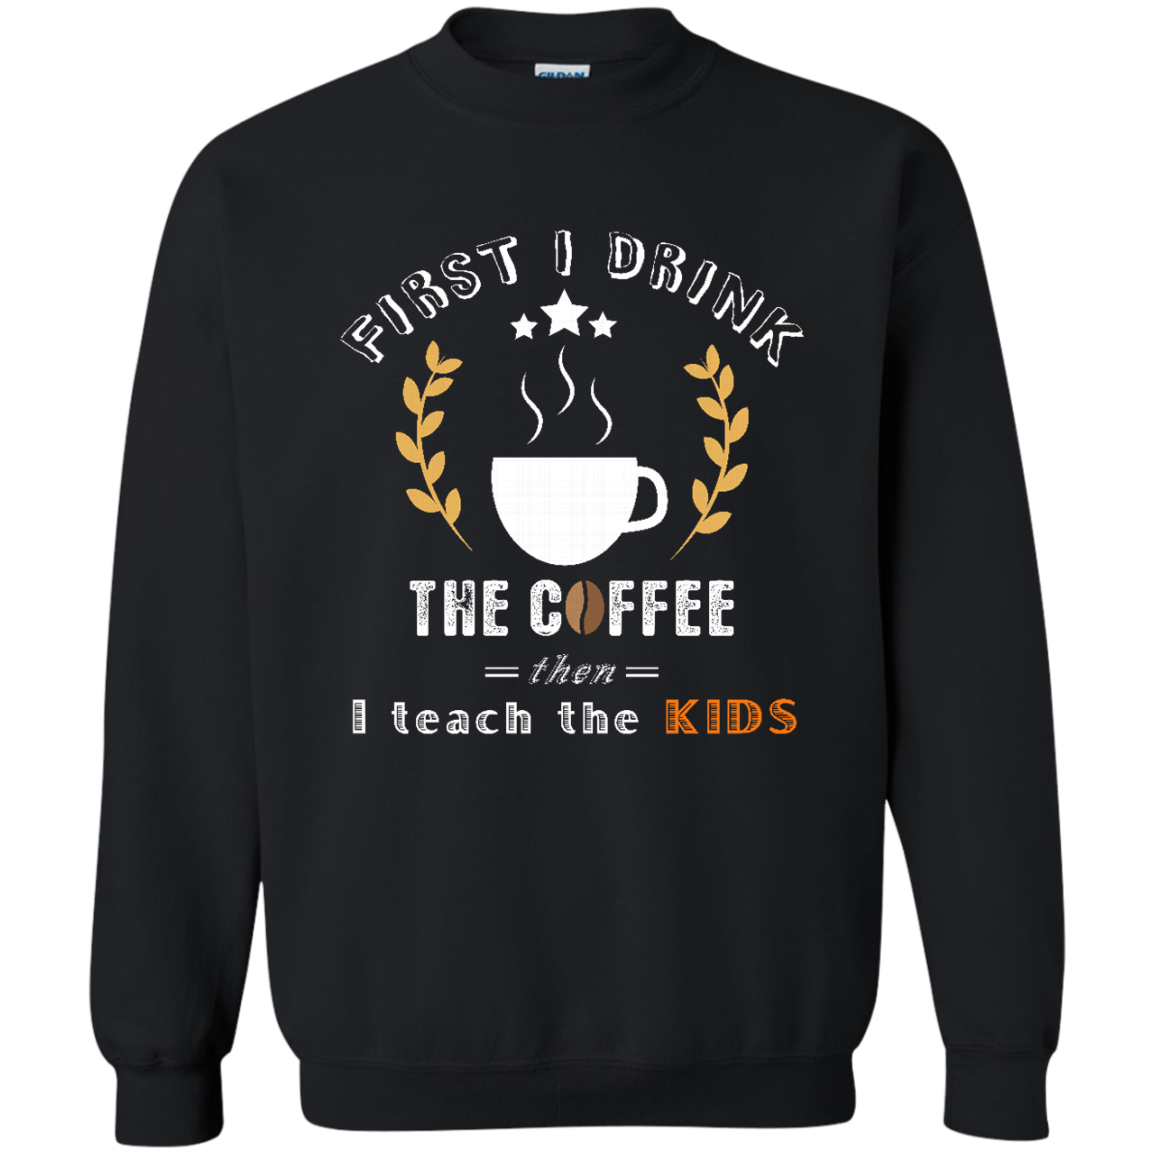 Coffee Sweatshirt First I drink the coffee  Best gift for your friends  your family and every one on their Birthday  Christmas and all holidays